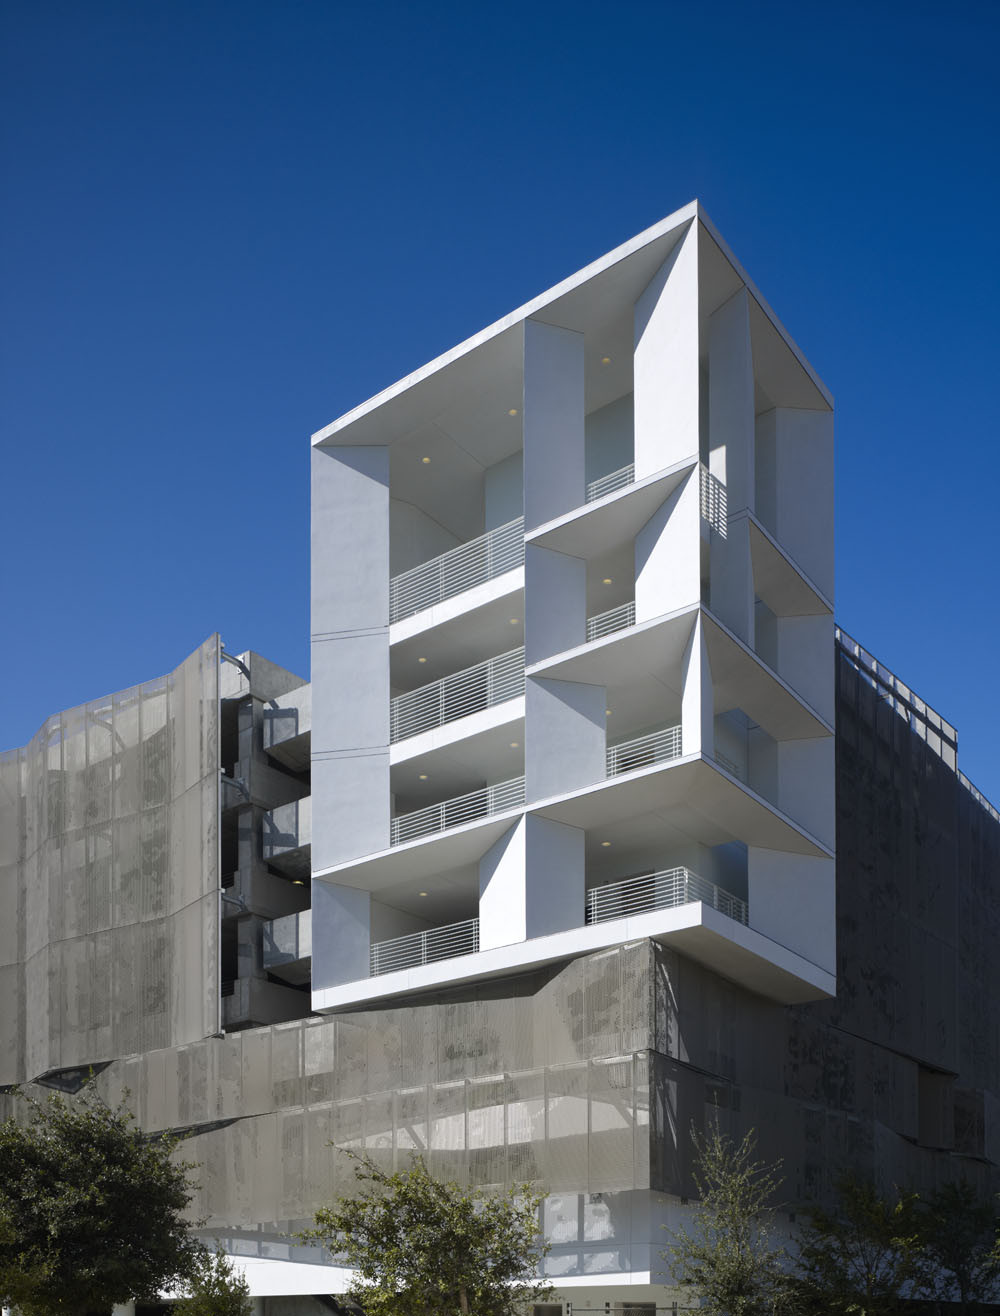 Mission Bay Block 27 Parking Structure / WRNS Studio, © Tim Griffith Photography